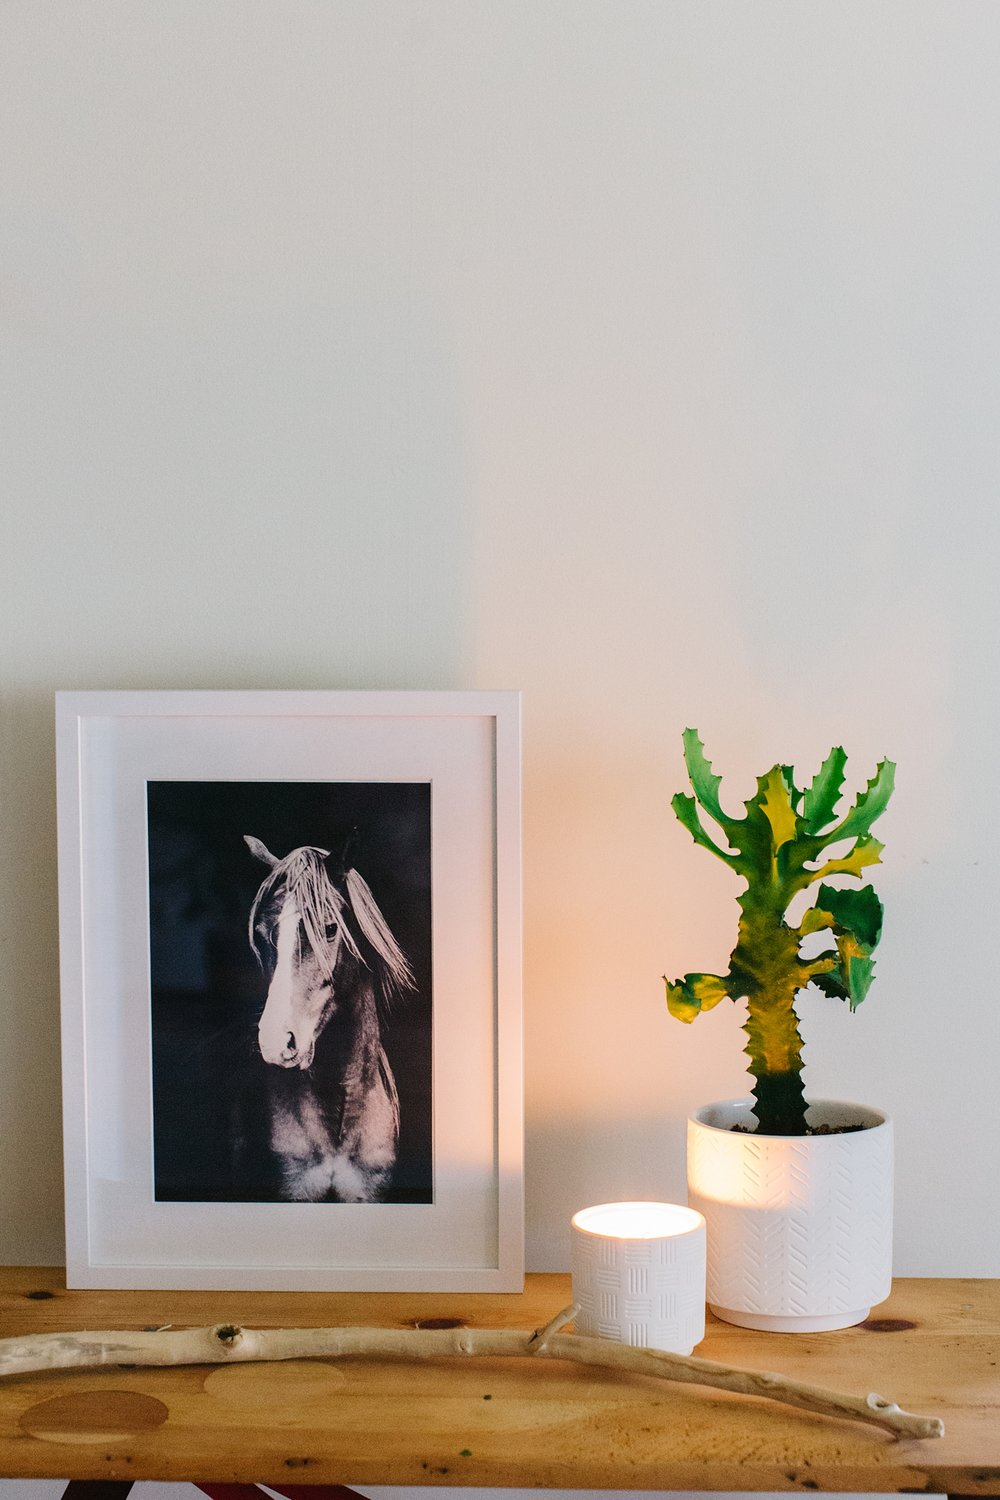 An black and white equine fine art print with a moody feel.